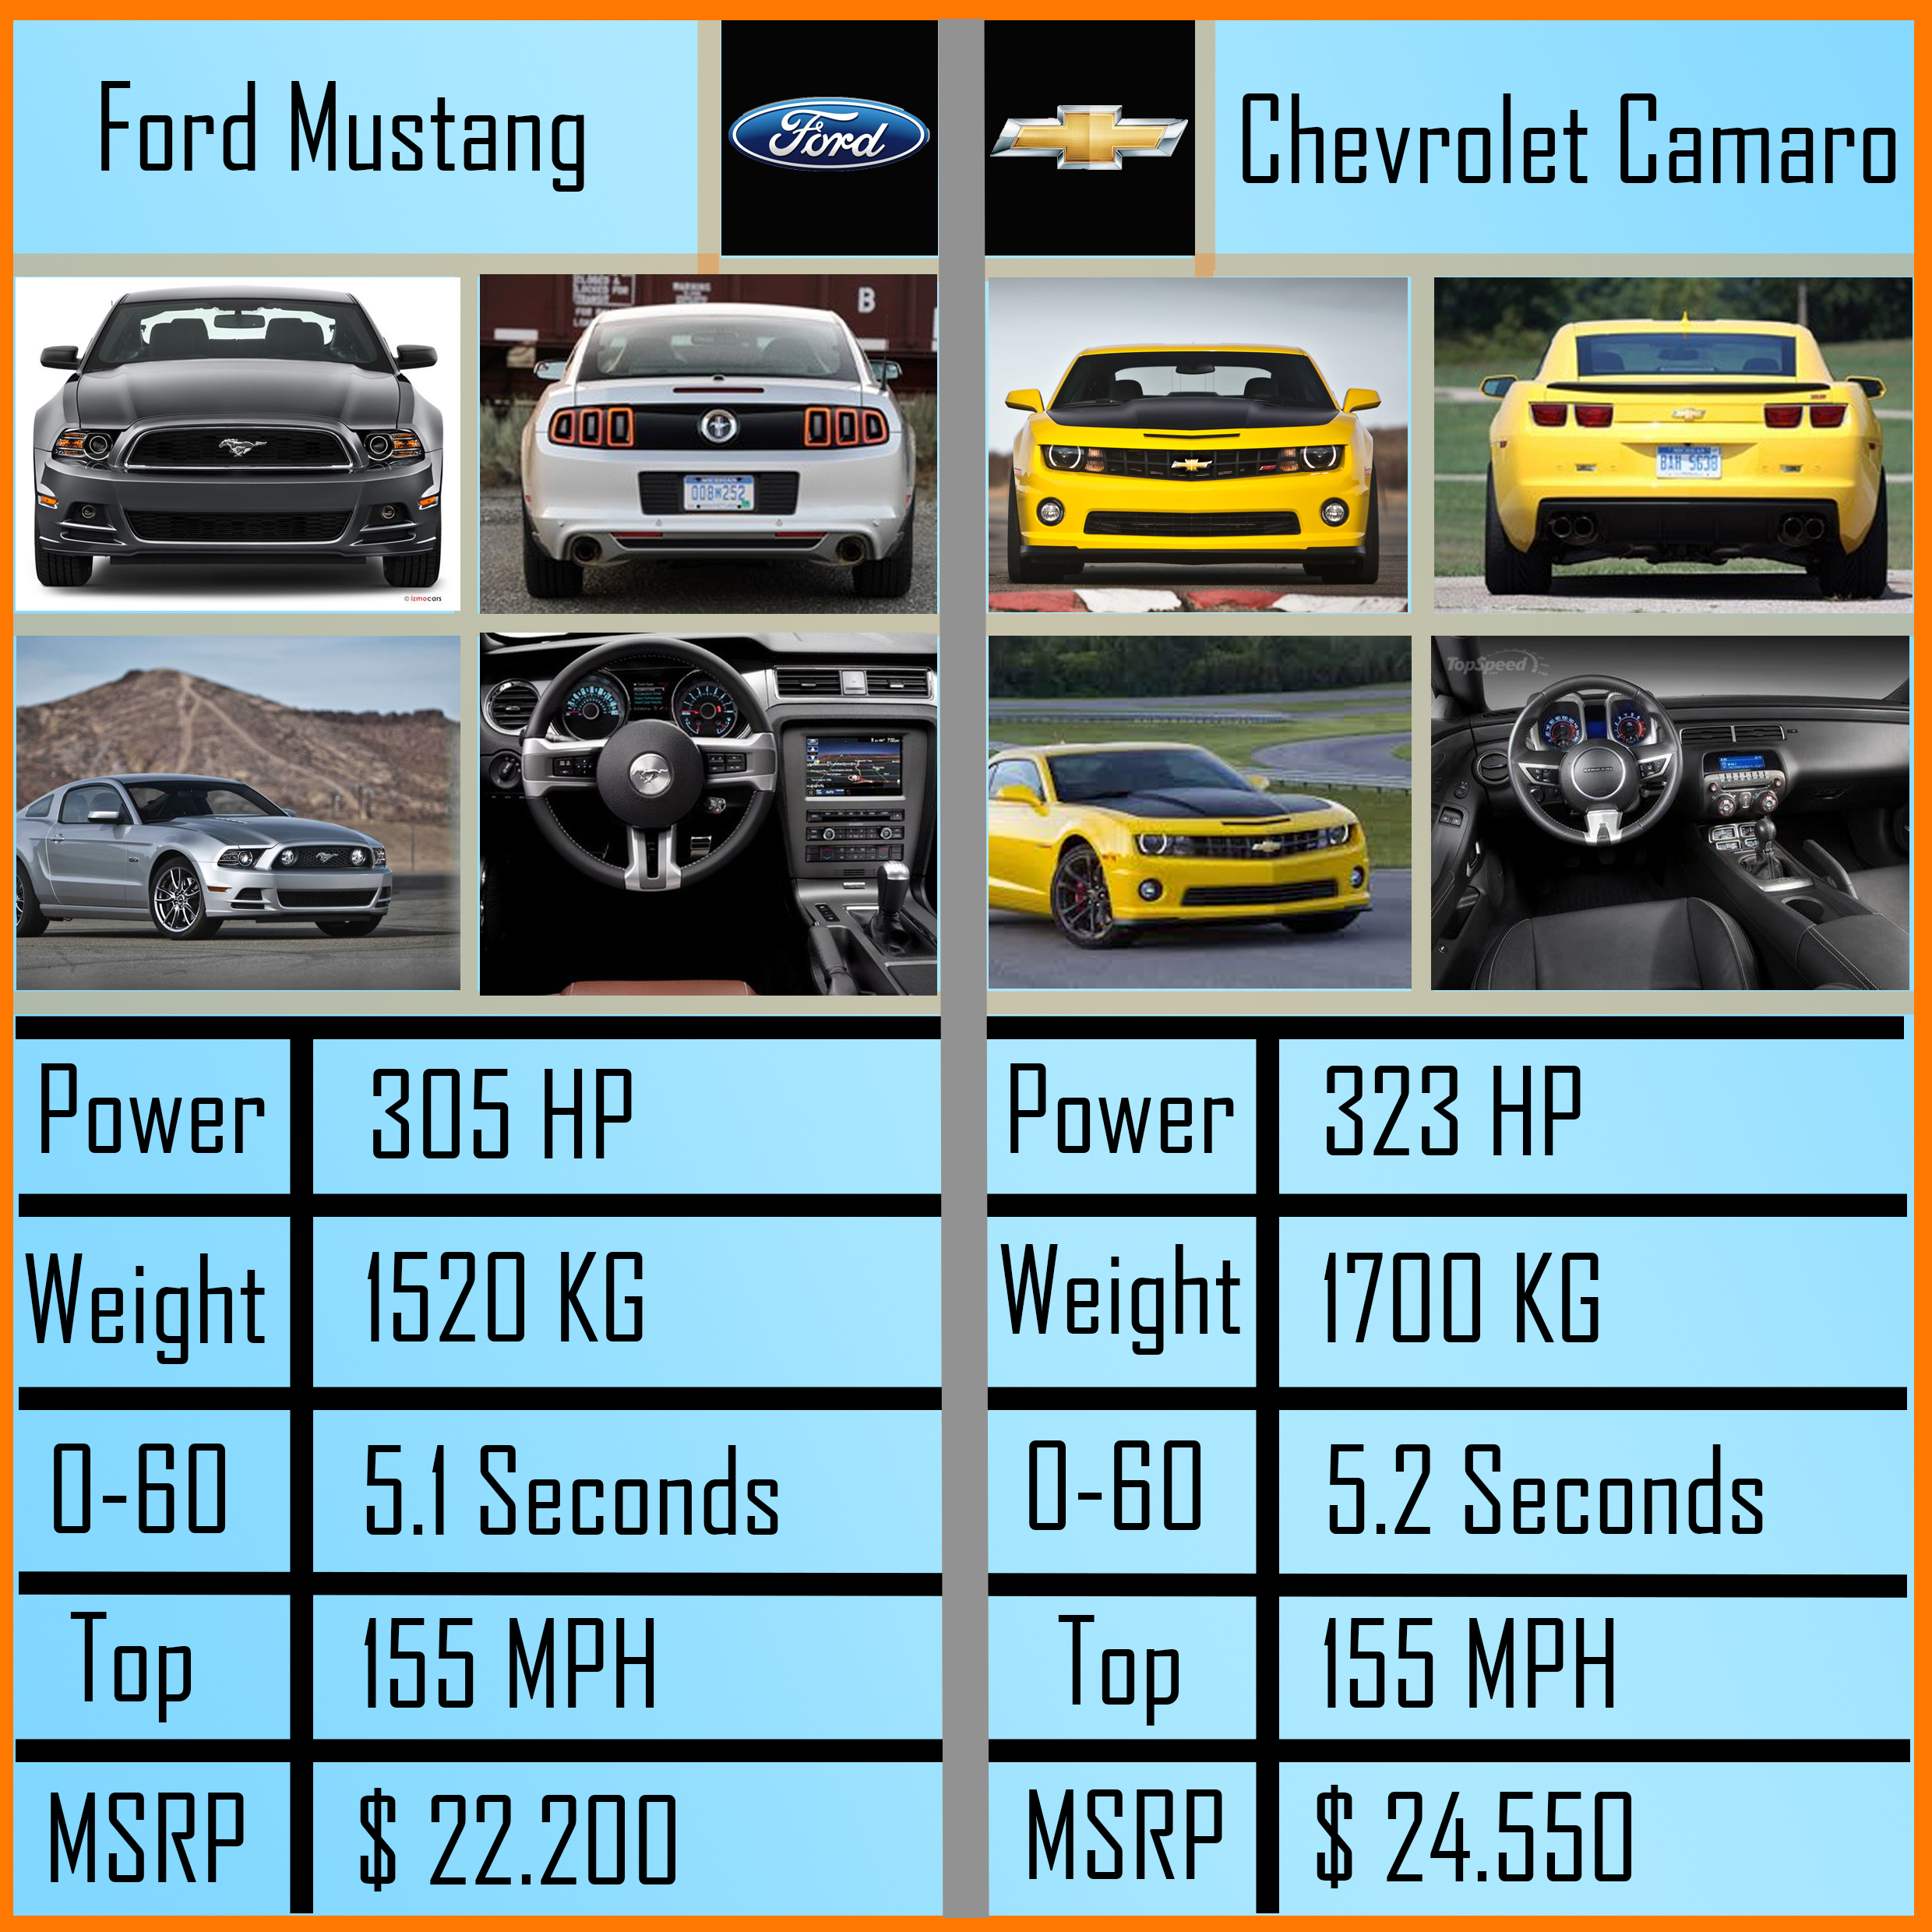 Ford Mustang Vs Chevrolet Camaro Make Your Choice